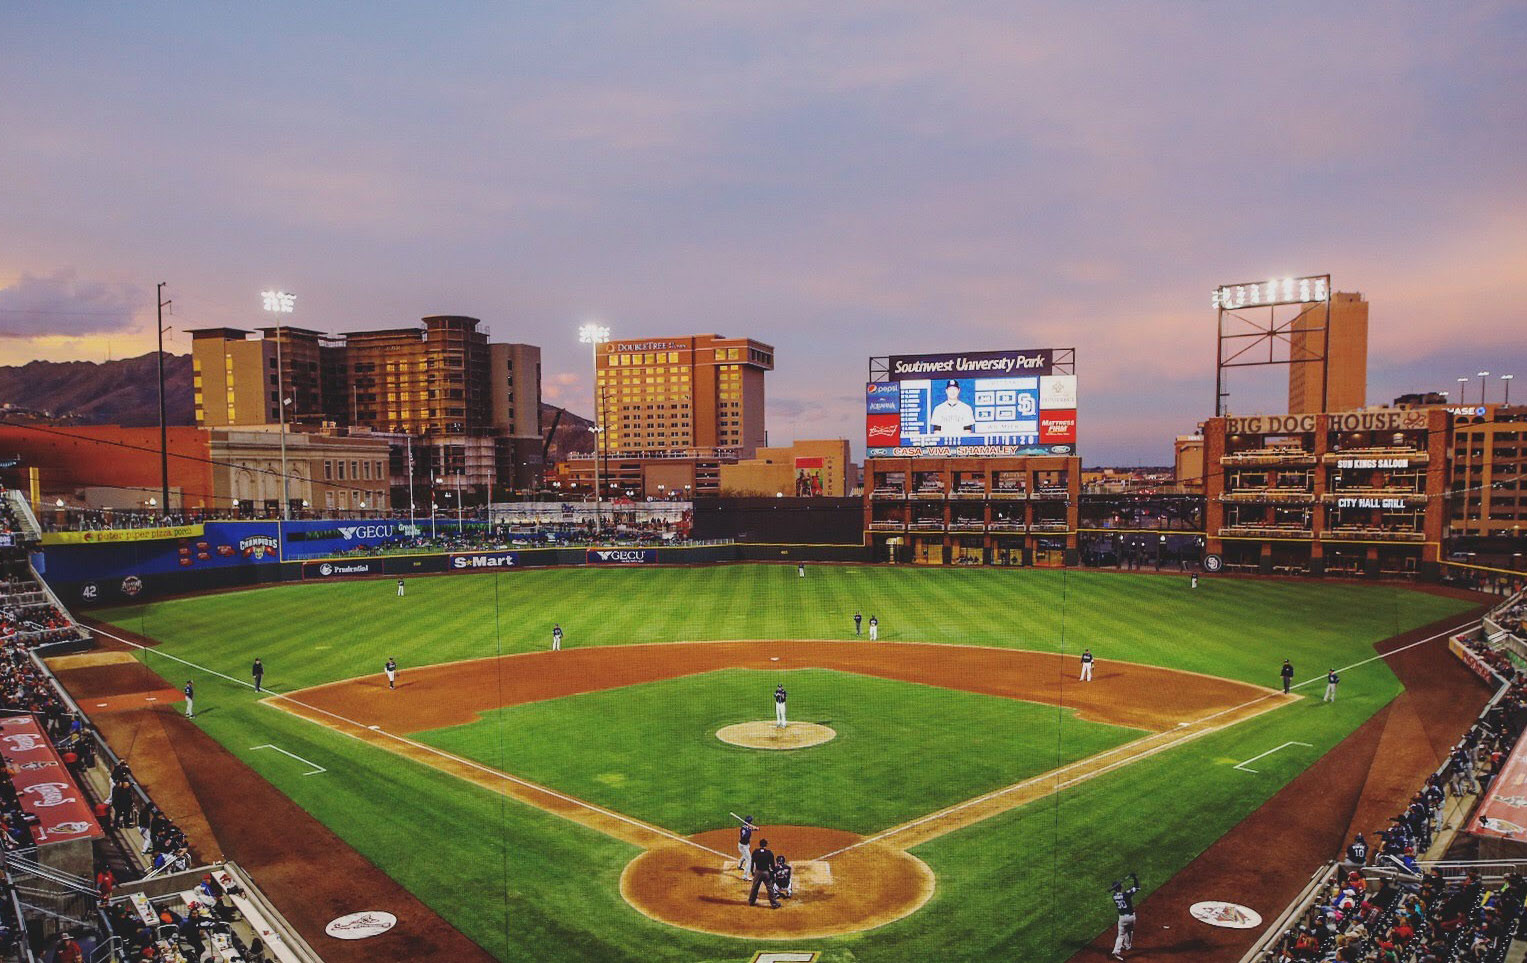 Southwest University Park - El Paso